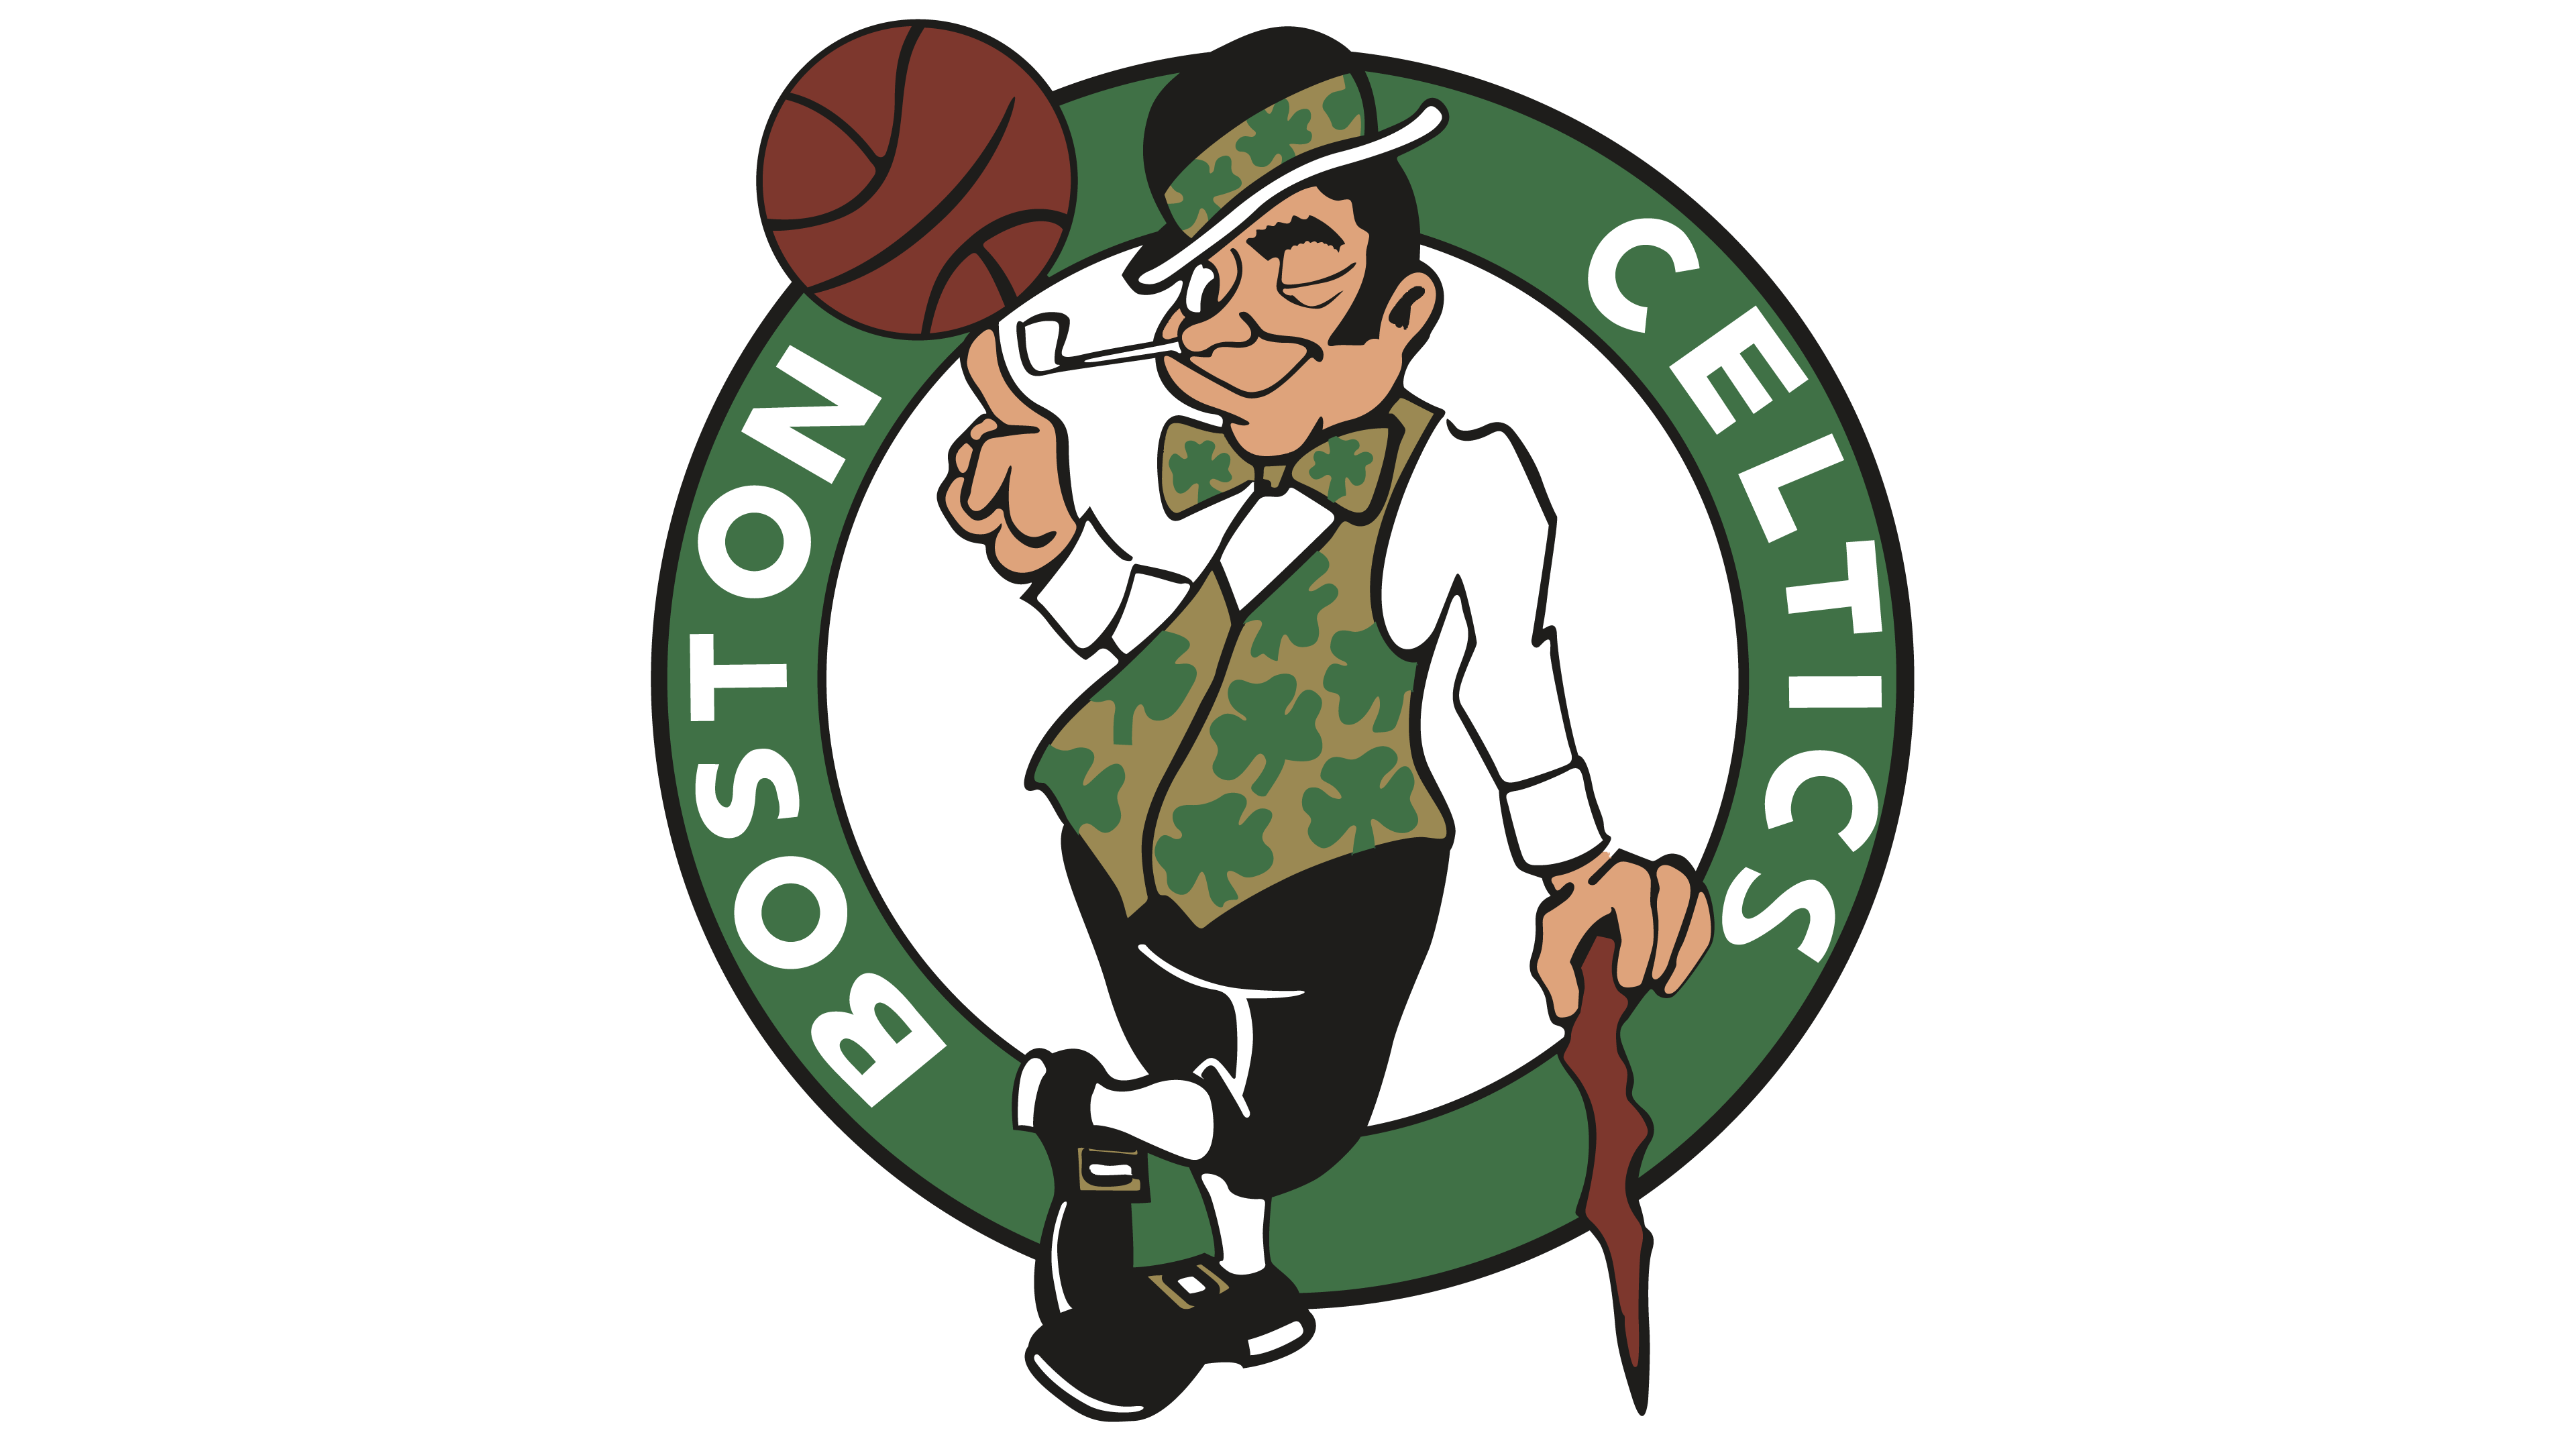 Leperchan with basketball clipart graphic royalty free Boston Celtics Logo - Interesting History of the Team Name and emblem graphic royalty free